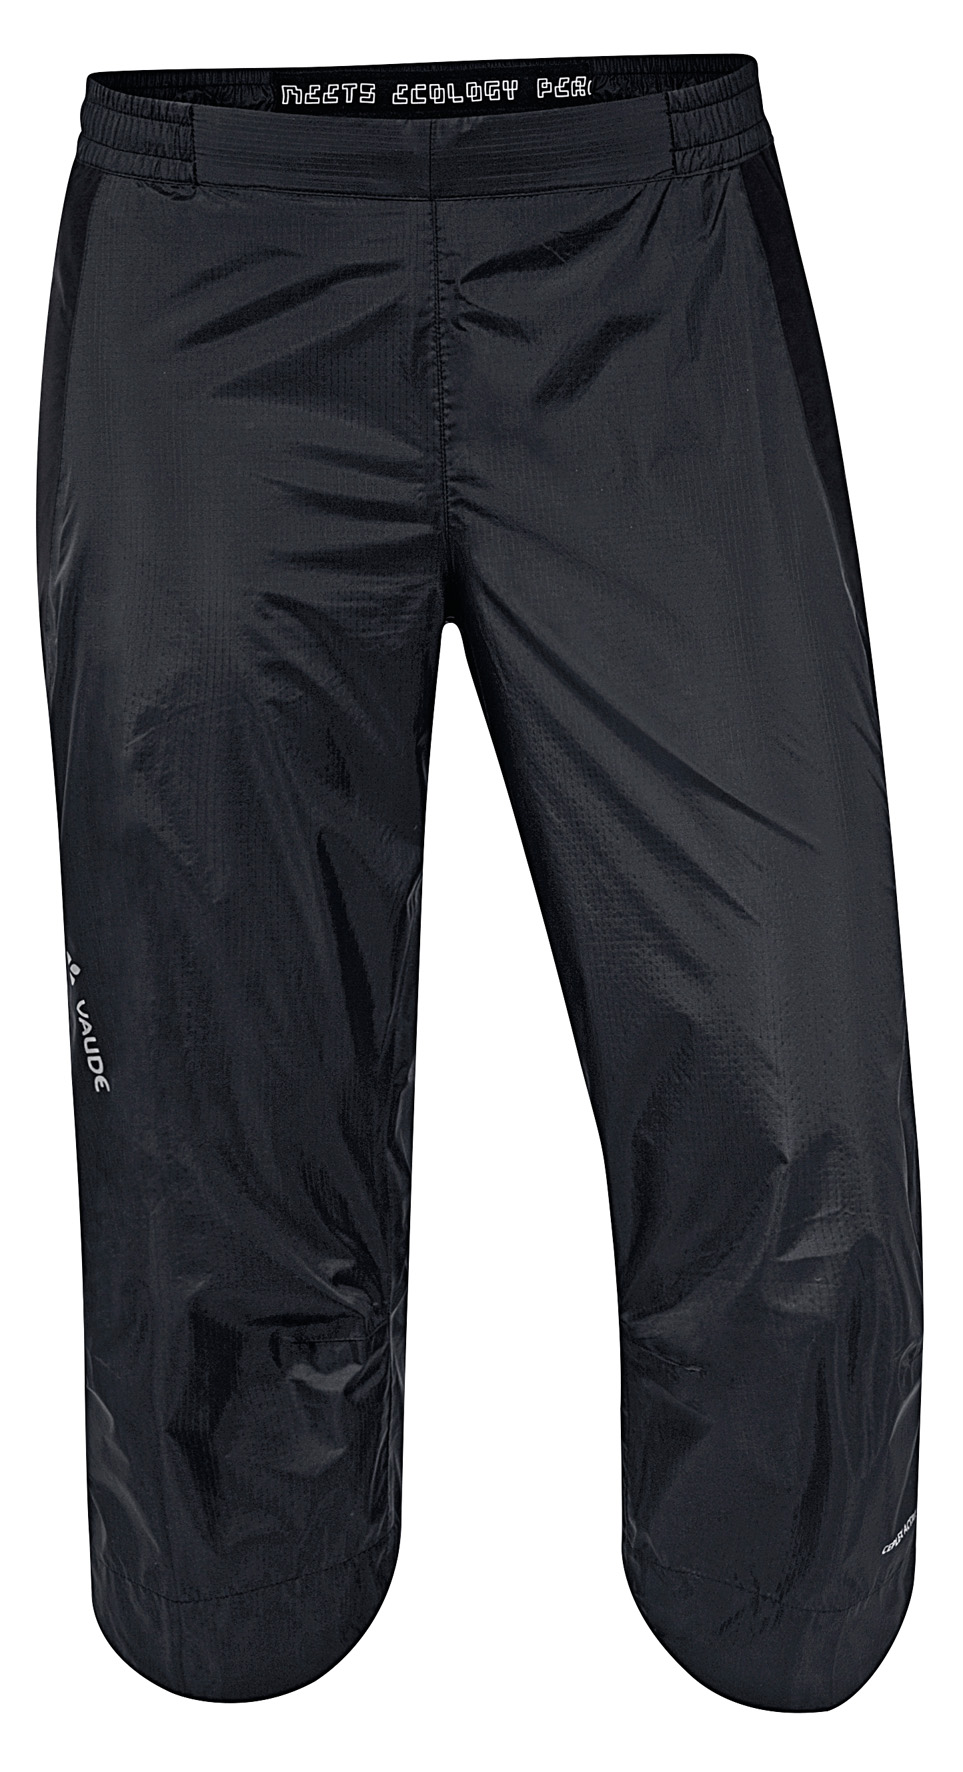 VAUDE Women´s Spray 3/4 Pants II black Größe 34 - schneider-sports